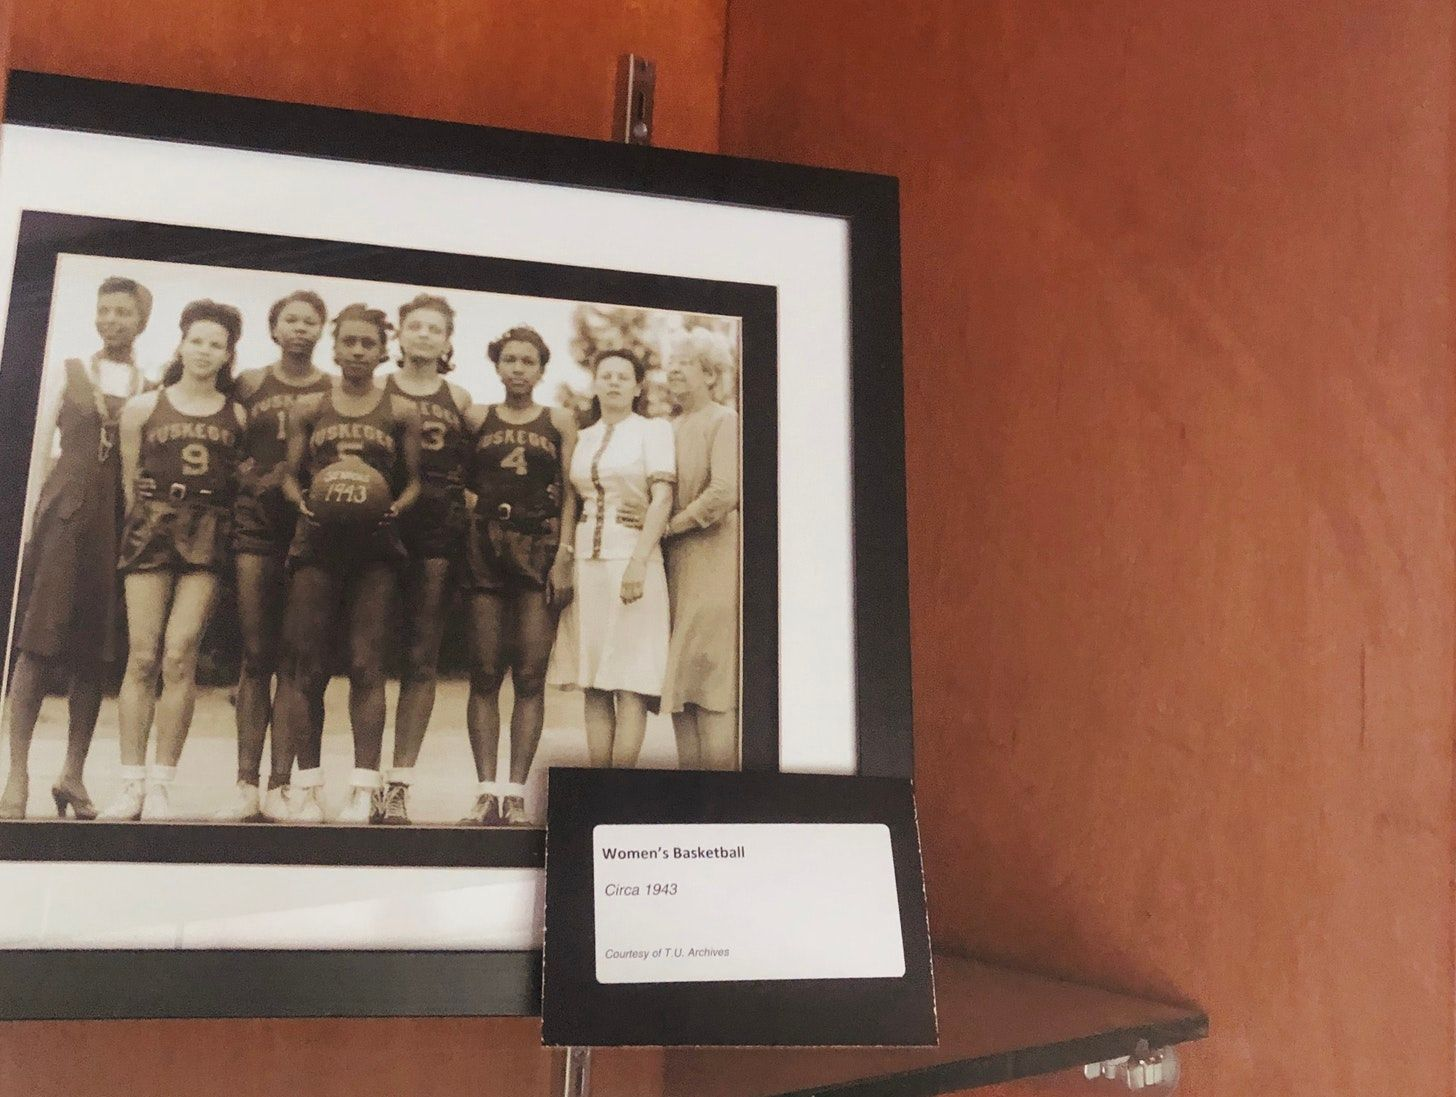 A photo of Tuskegee women's basketball team from 1943.